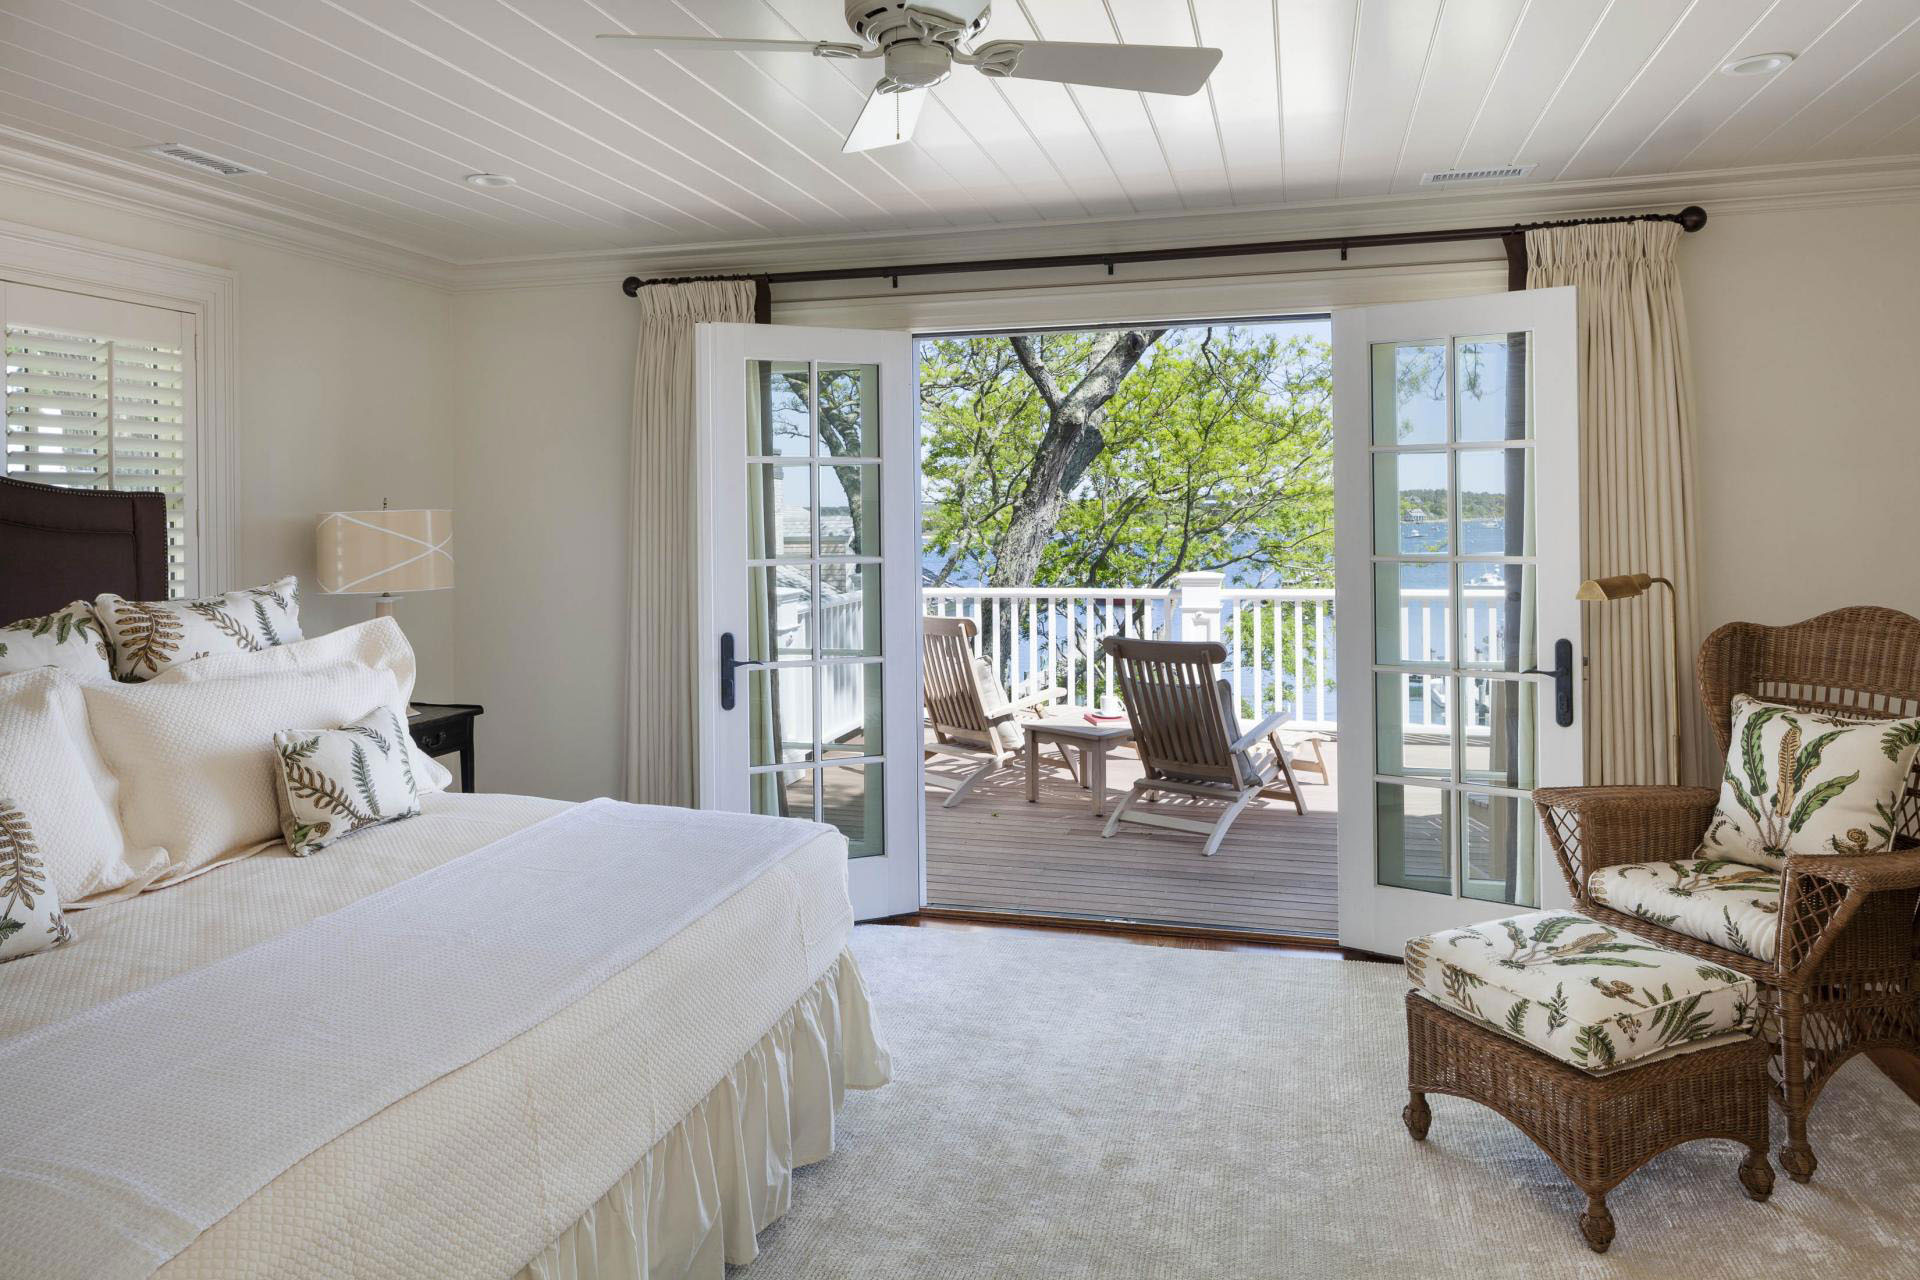 Master Bedroom with Balcony and Water View